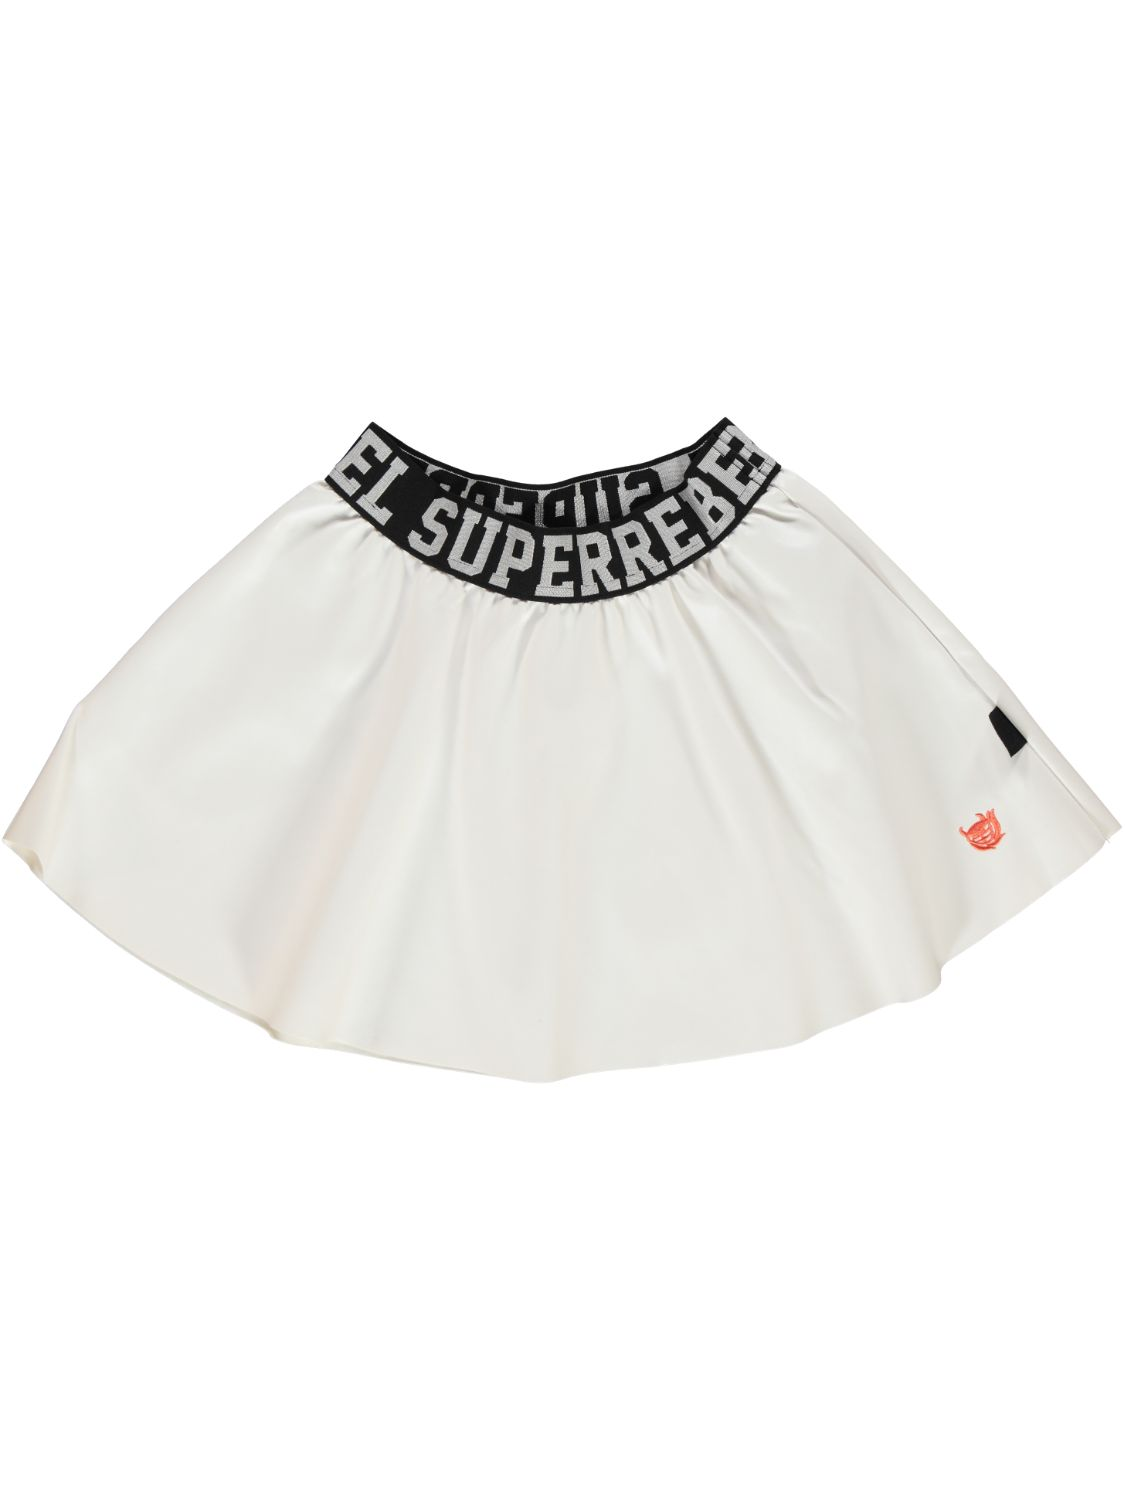 Super Rebel Rok